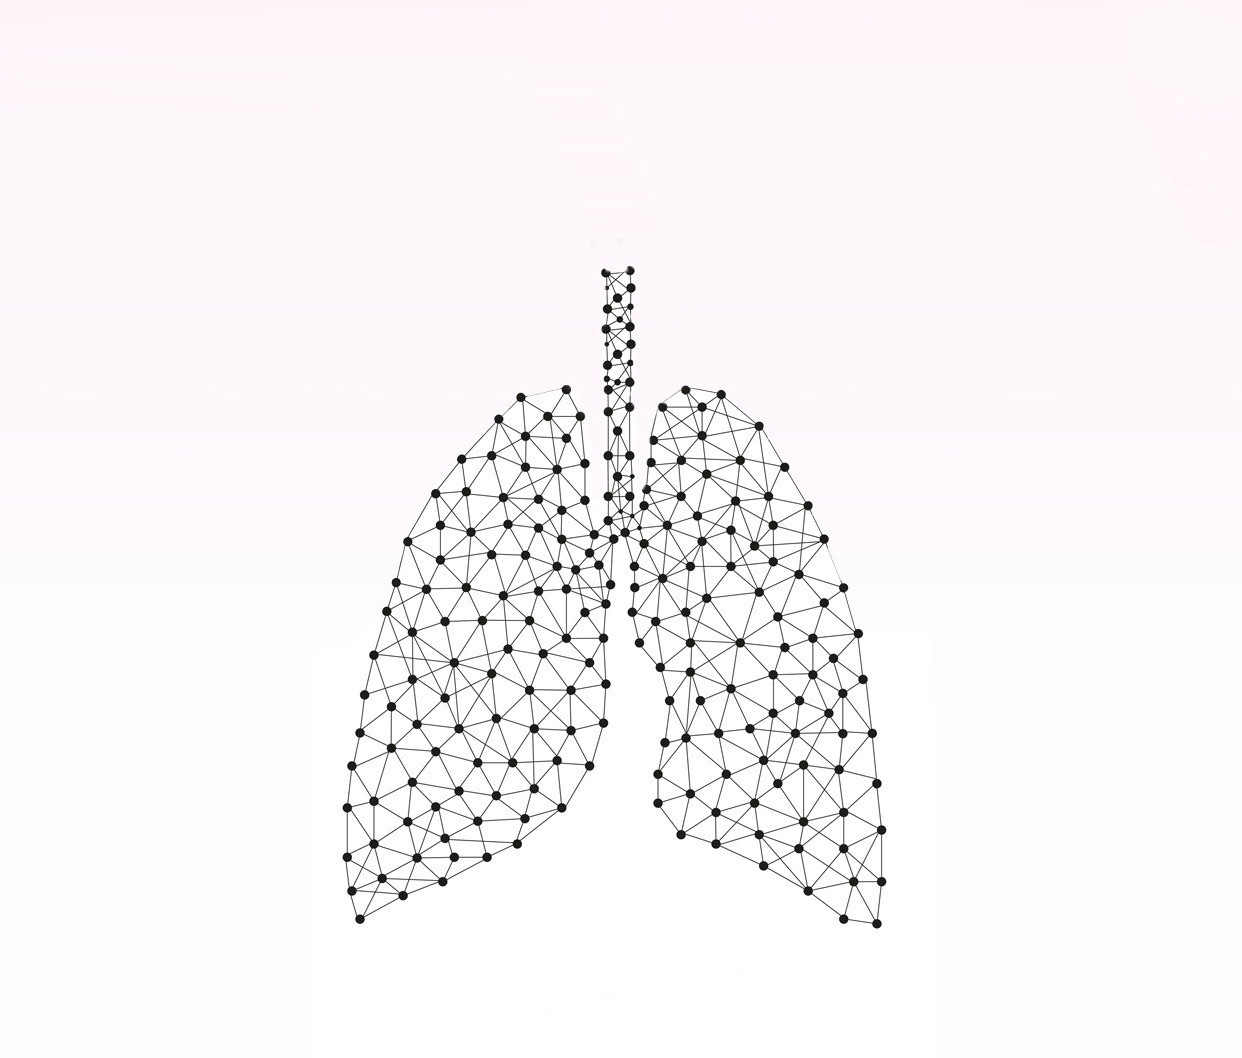 Lungs Project - logo inspired by rhizomatic connections